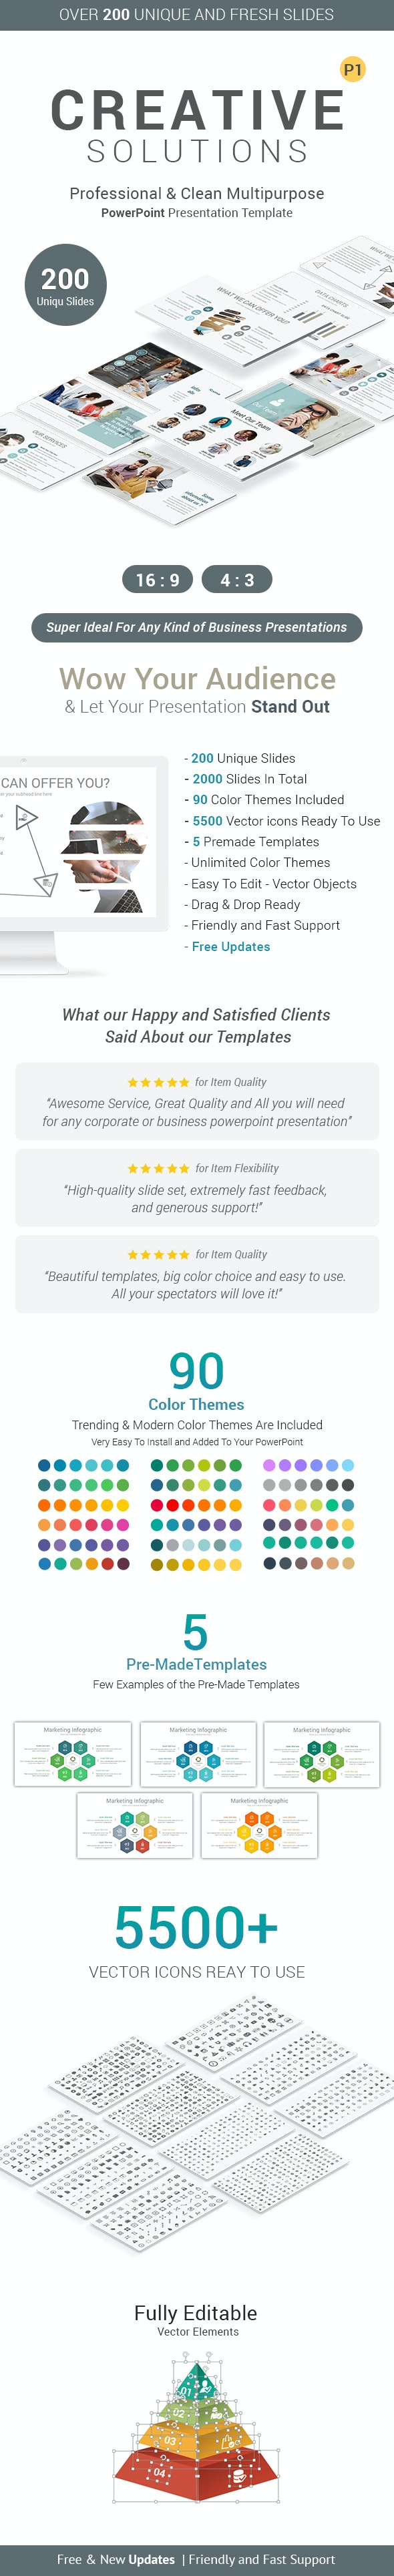 Creative Pack PowerPoint Presentation Template - Business PowerPoint Templates